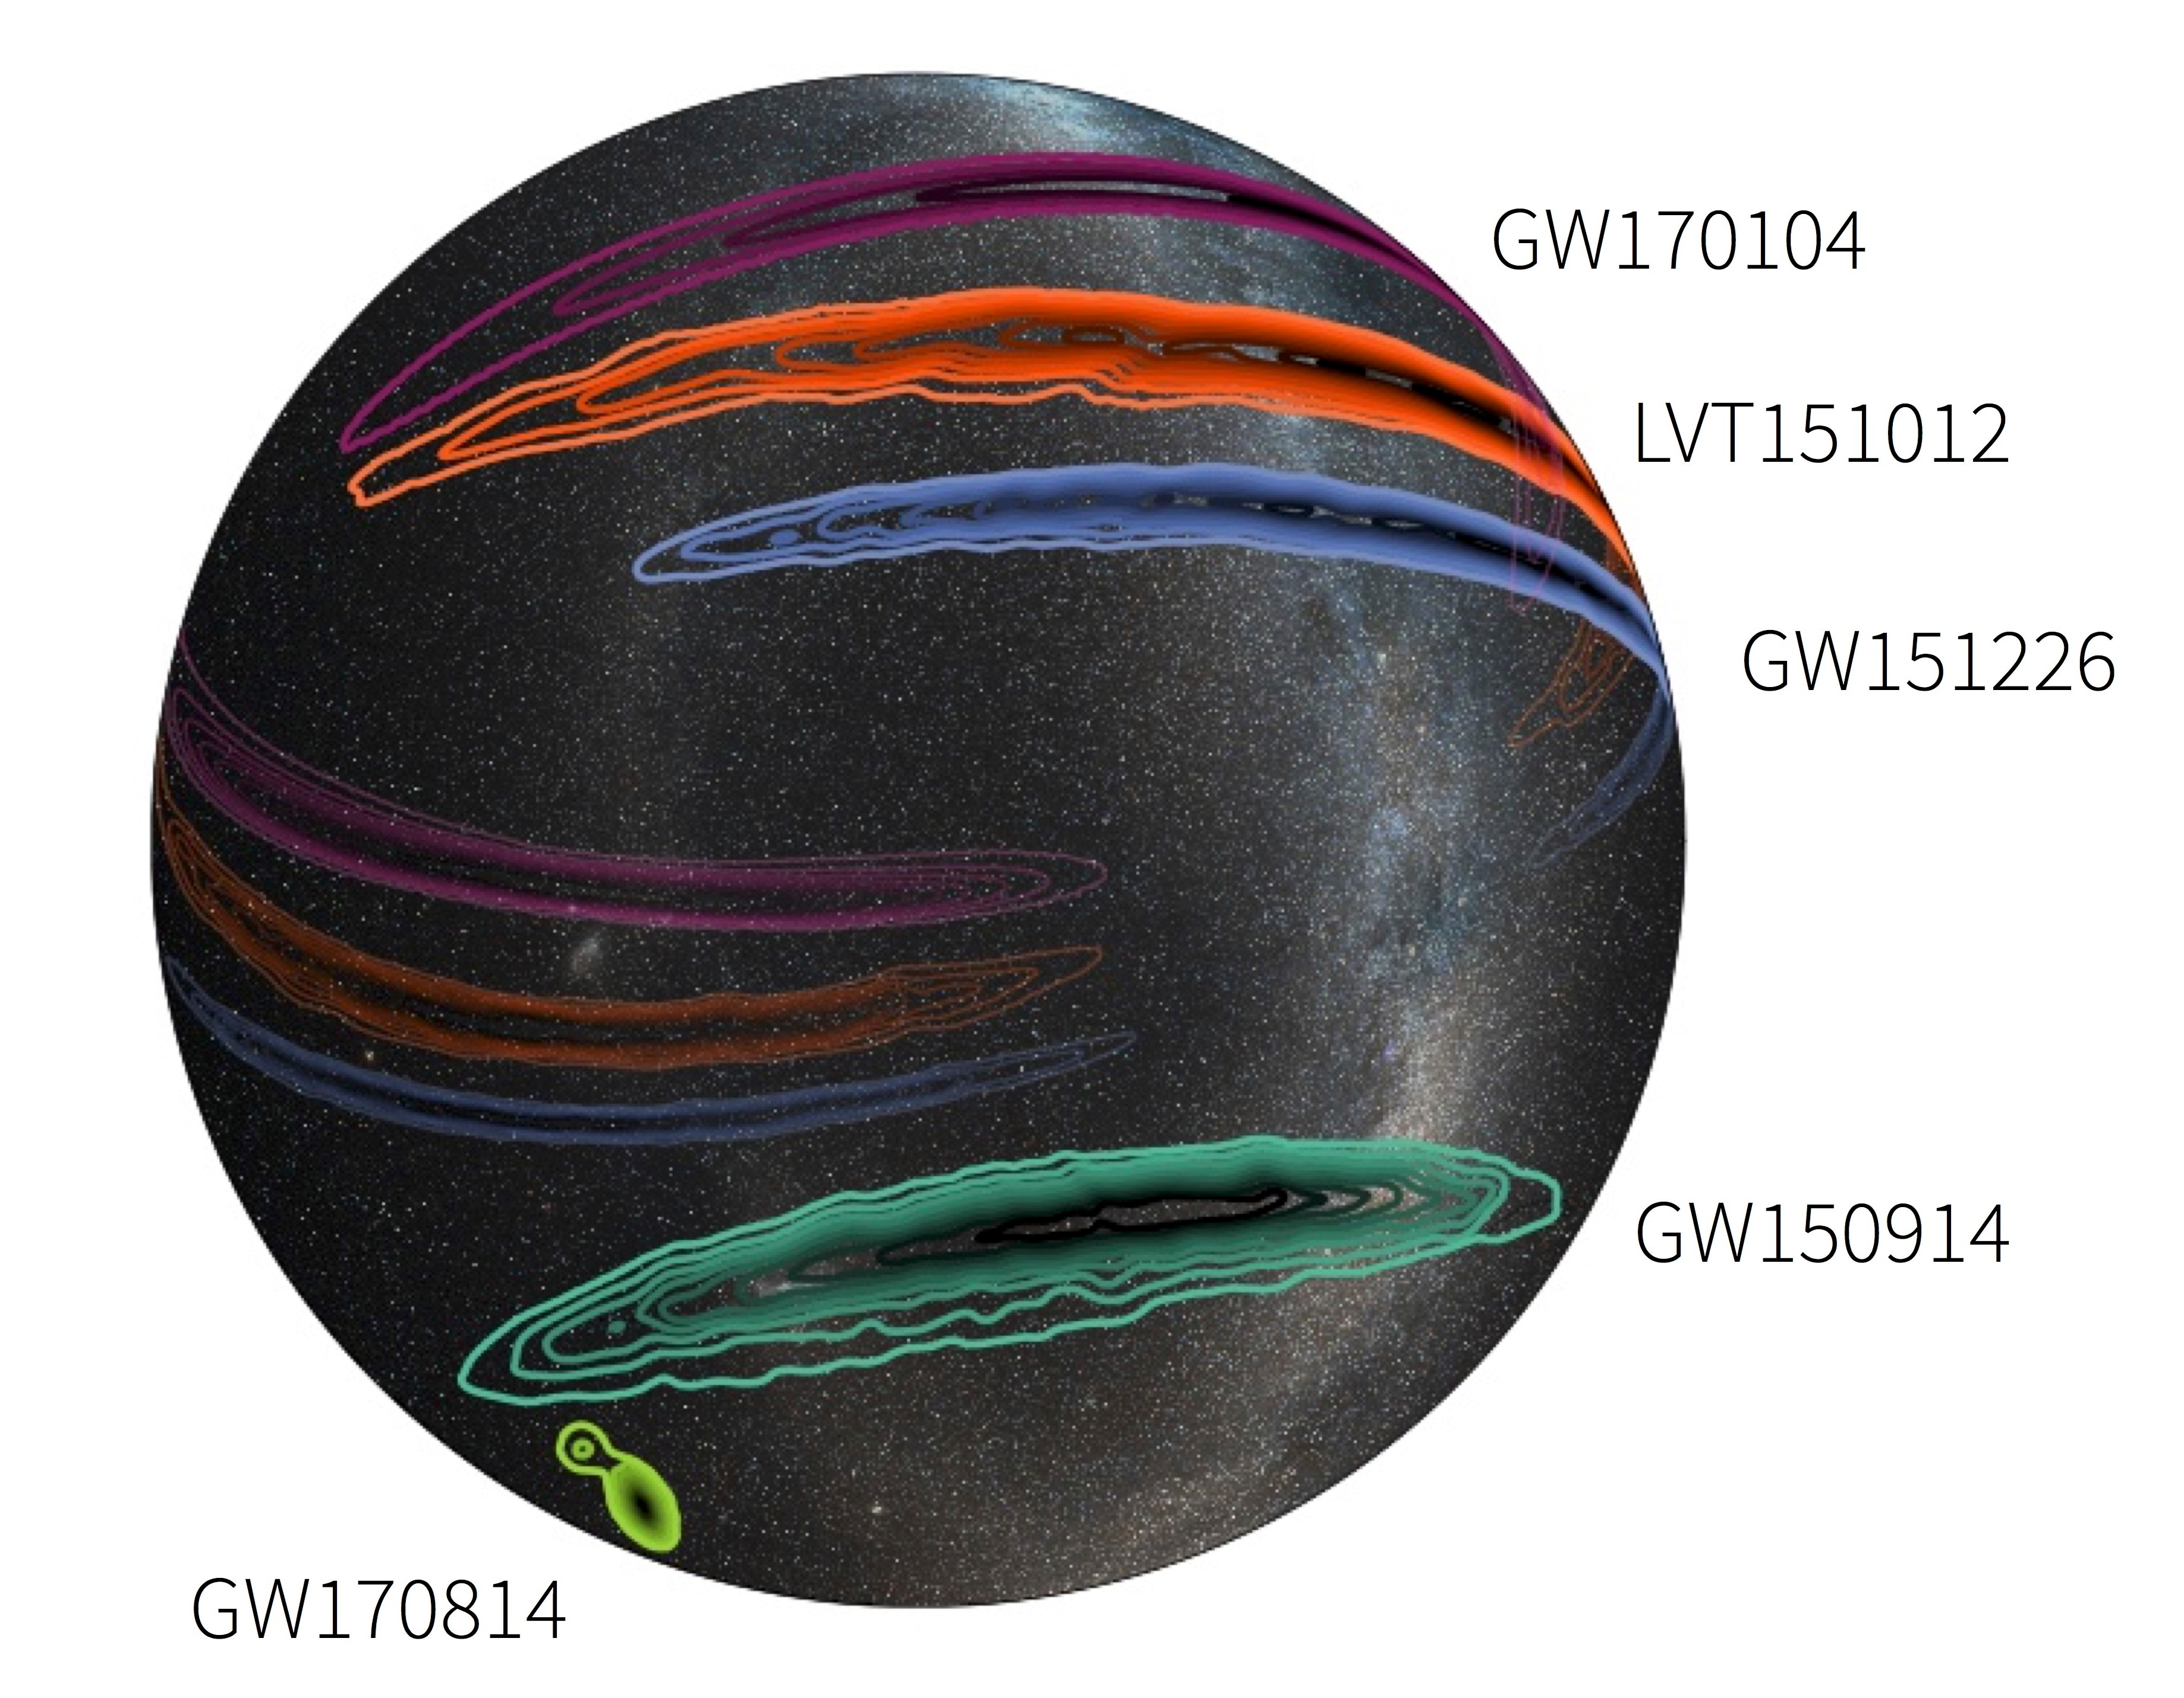 https://www.focus.it/site_stored/imgs/0005/010/o1-o2-skymaps-white_gw170814.jpg